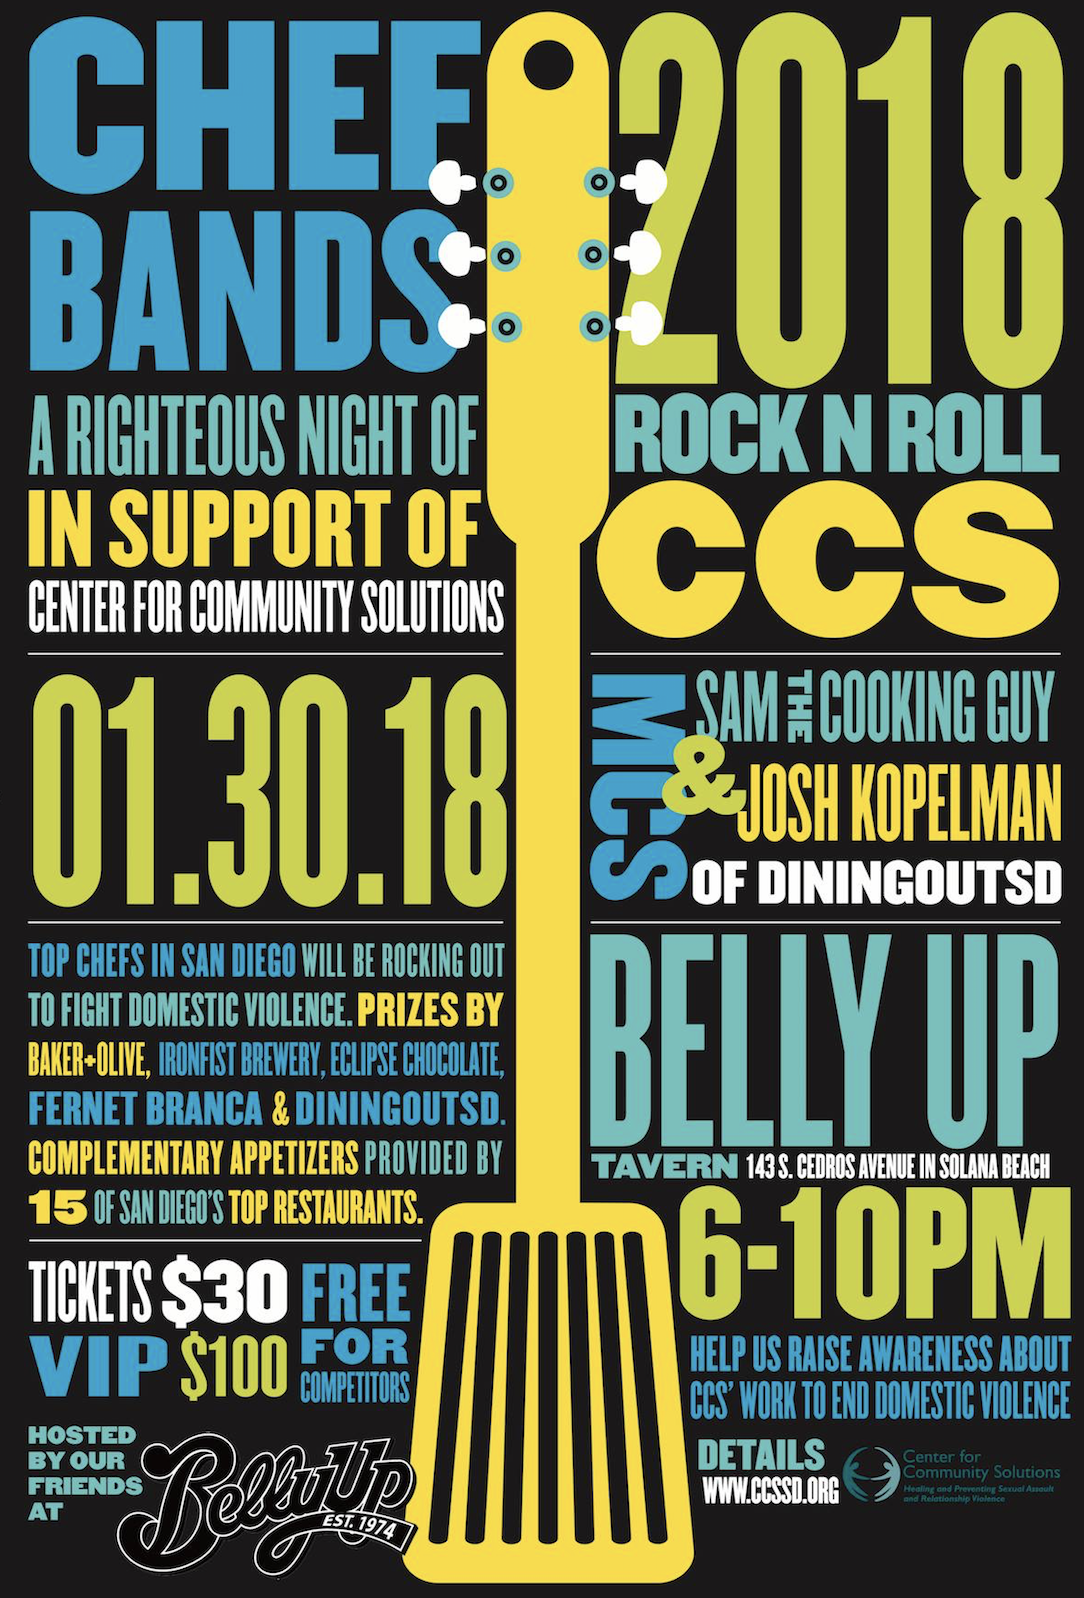 Don't Miss The 8th Annual Battle Of The Chef Bands - January 30!